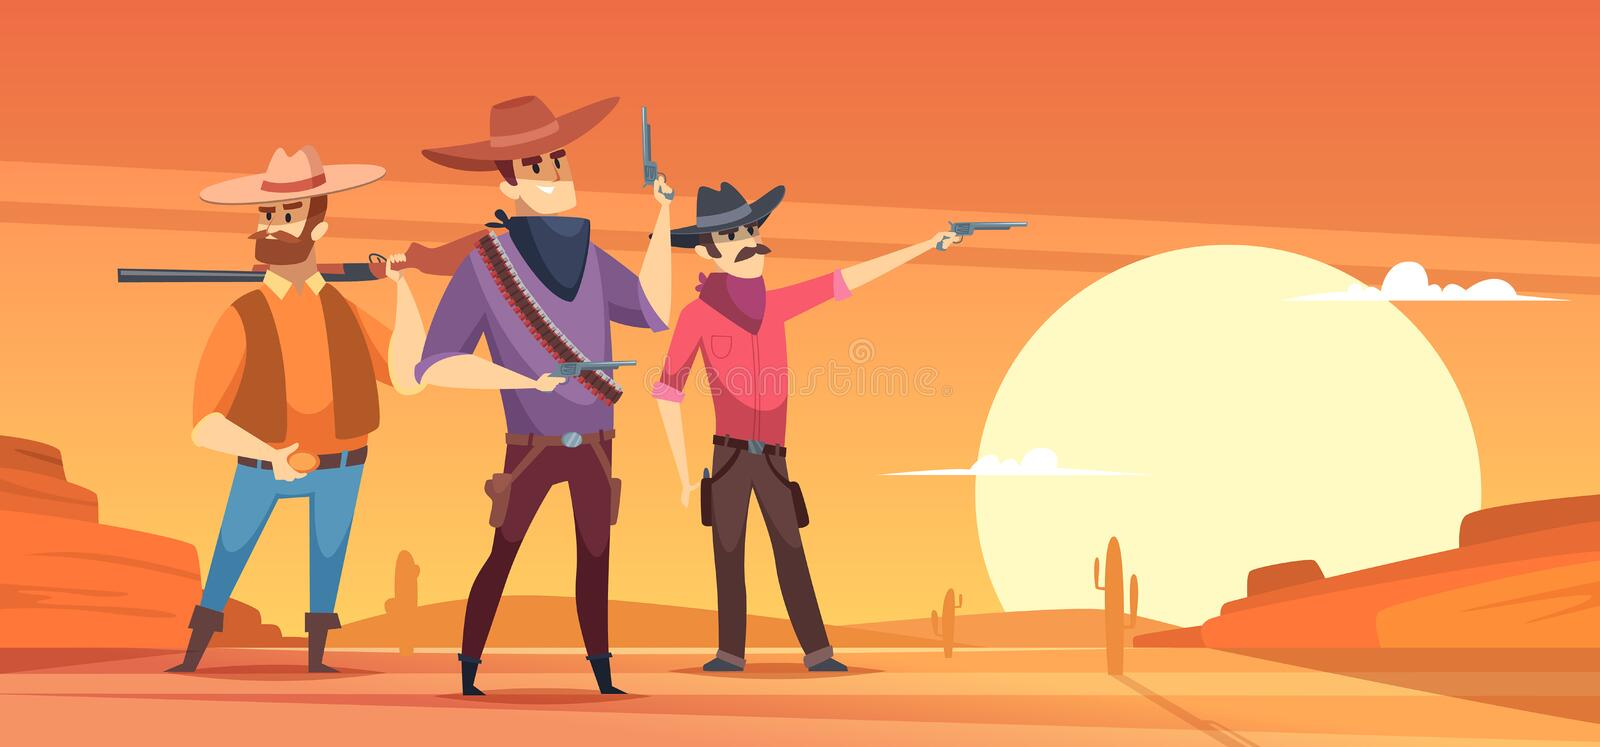 Western background. Dessert silhouettes and cowboys on horses wildlife vector illustrations royalty free illustration